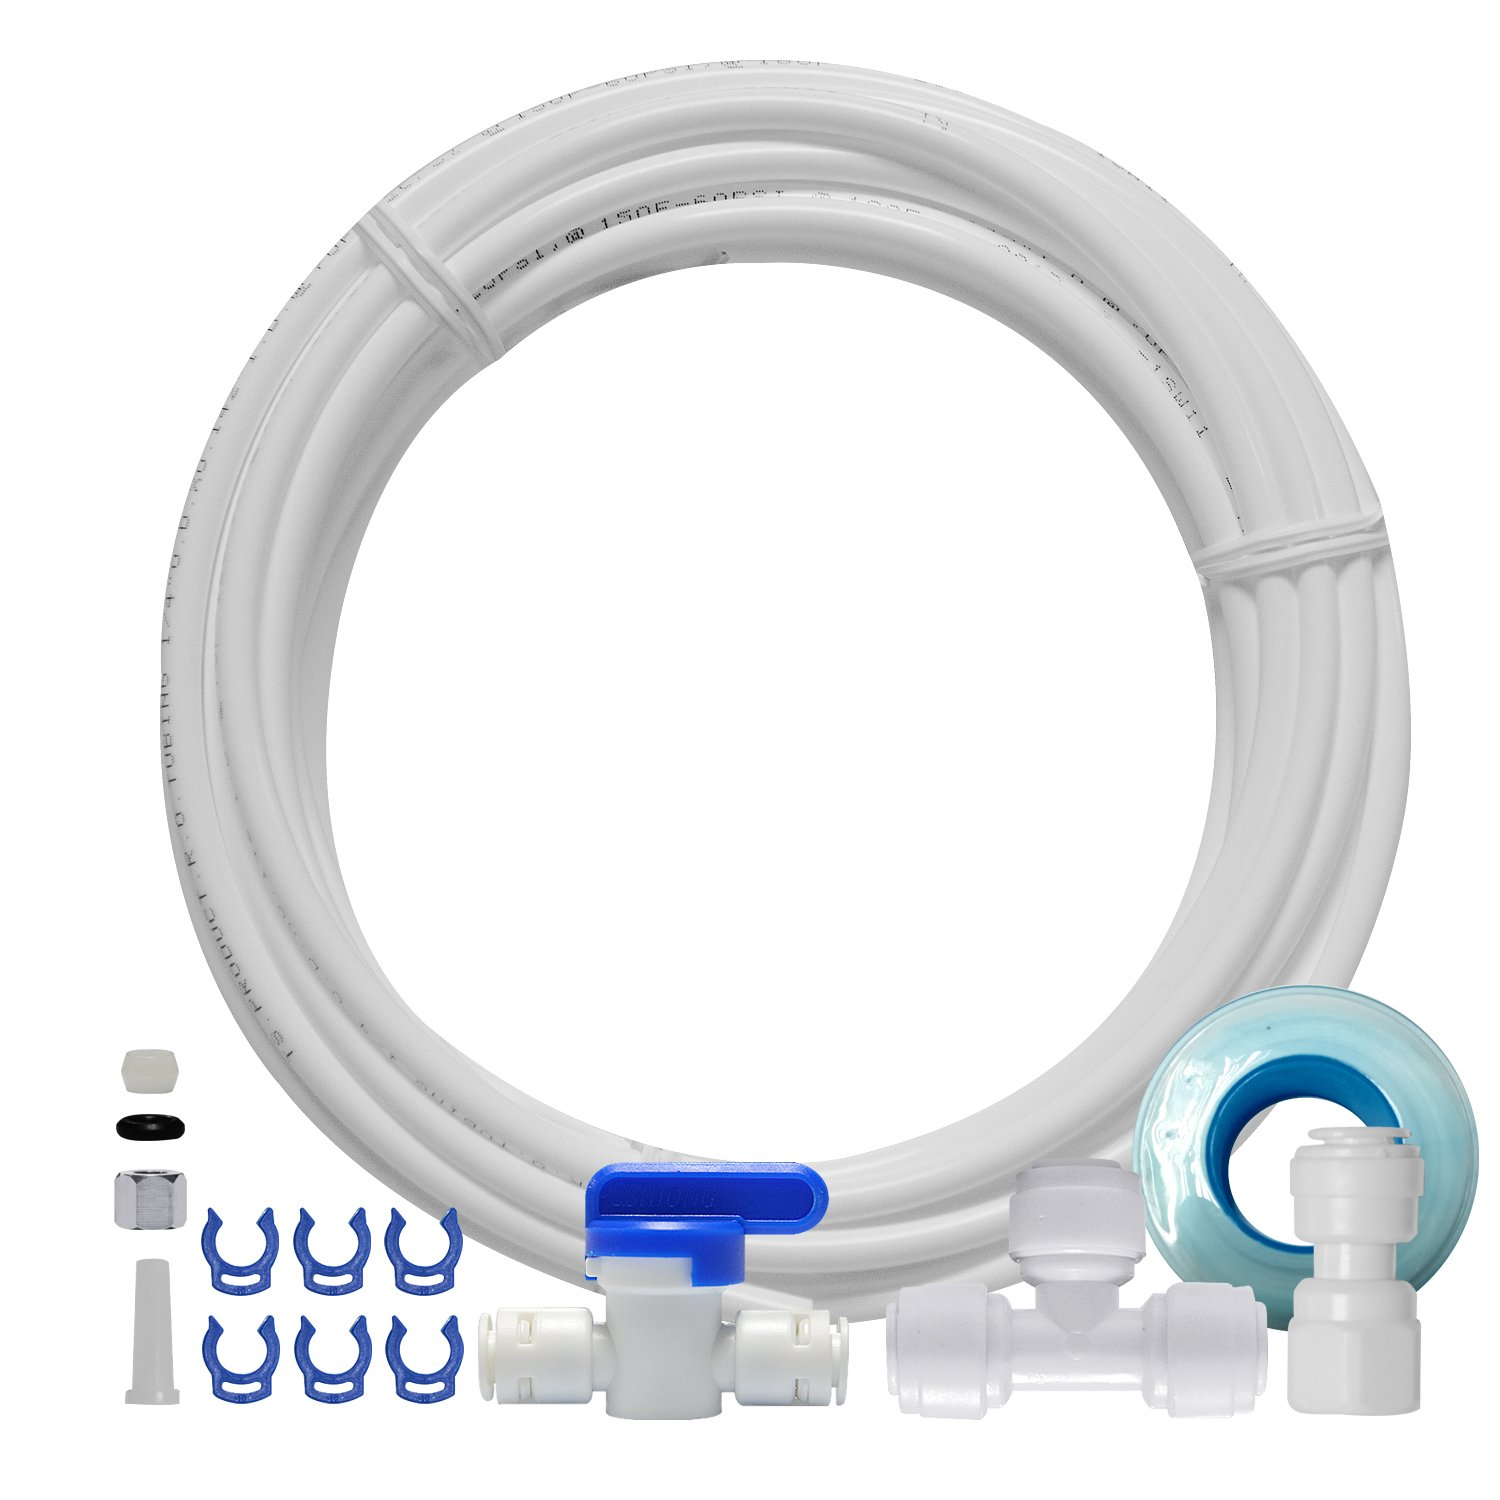 FS-TFC Ice Maker Water Line Kit and Refrigerator Water Line Fridge Water Line Kit for Reverse Osmosis Systems & Water Filters, 25ft 1/4'' Tubing with 1/4'' Push-In and Compression Fittings